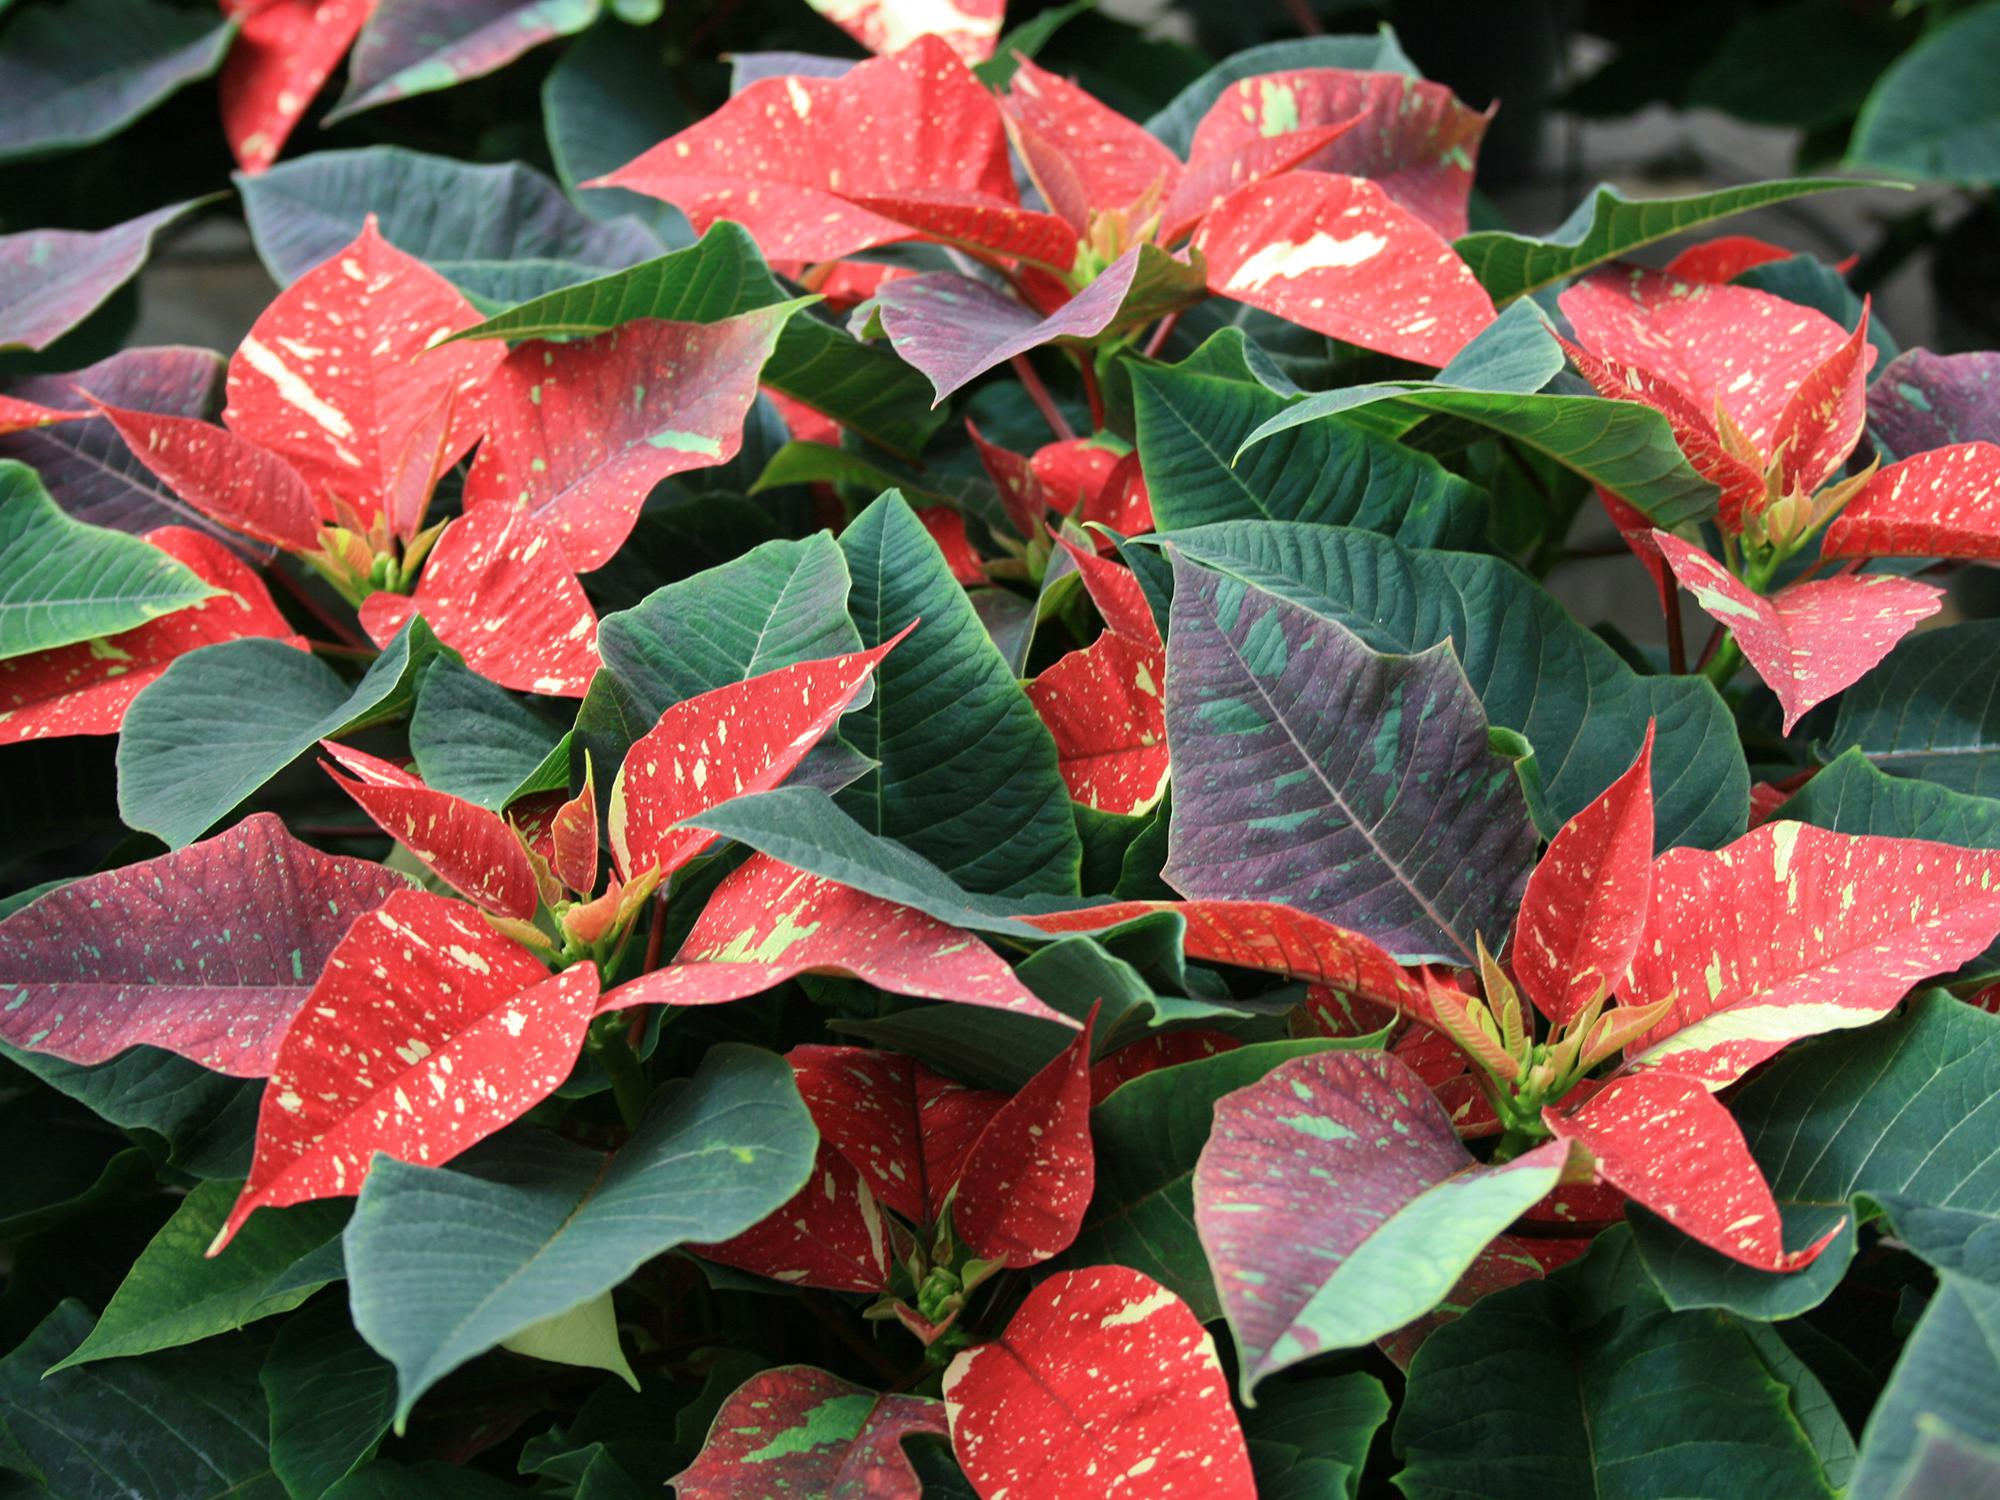 Red poinsettias are the traditional choice for many holiday gardeners, but other possibilities include these Jingle Bells poinsettias. (Photo by MSU Extension/Gary Bachman)